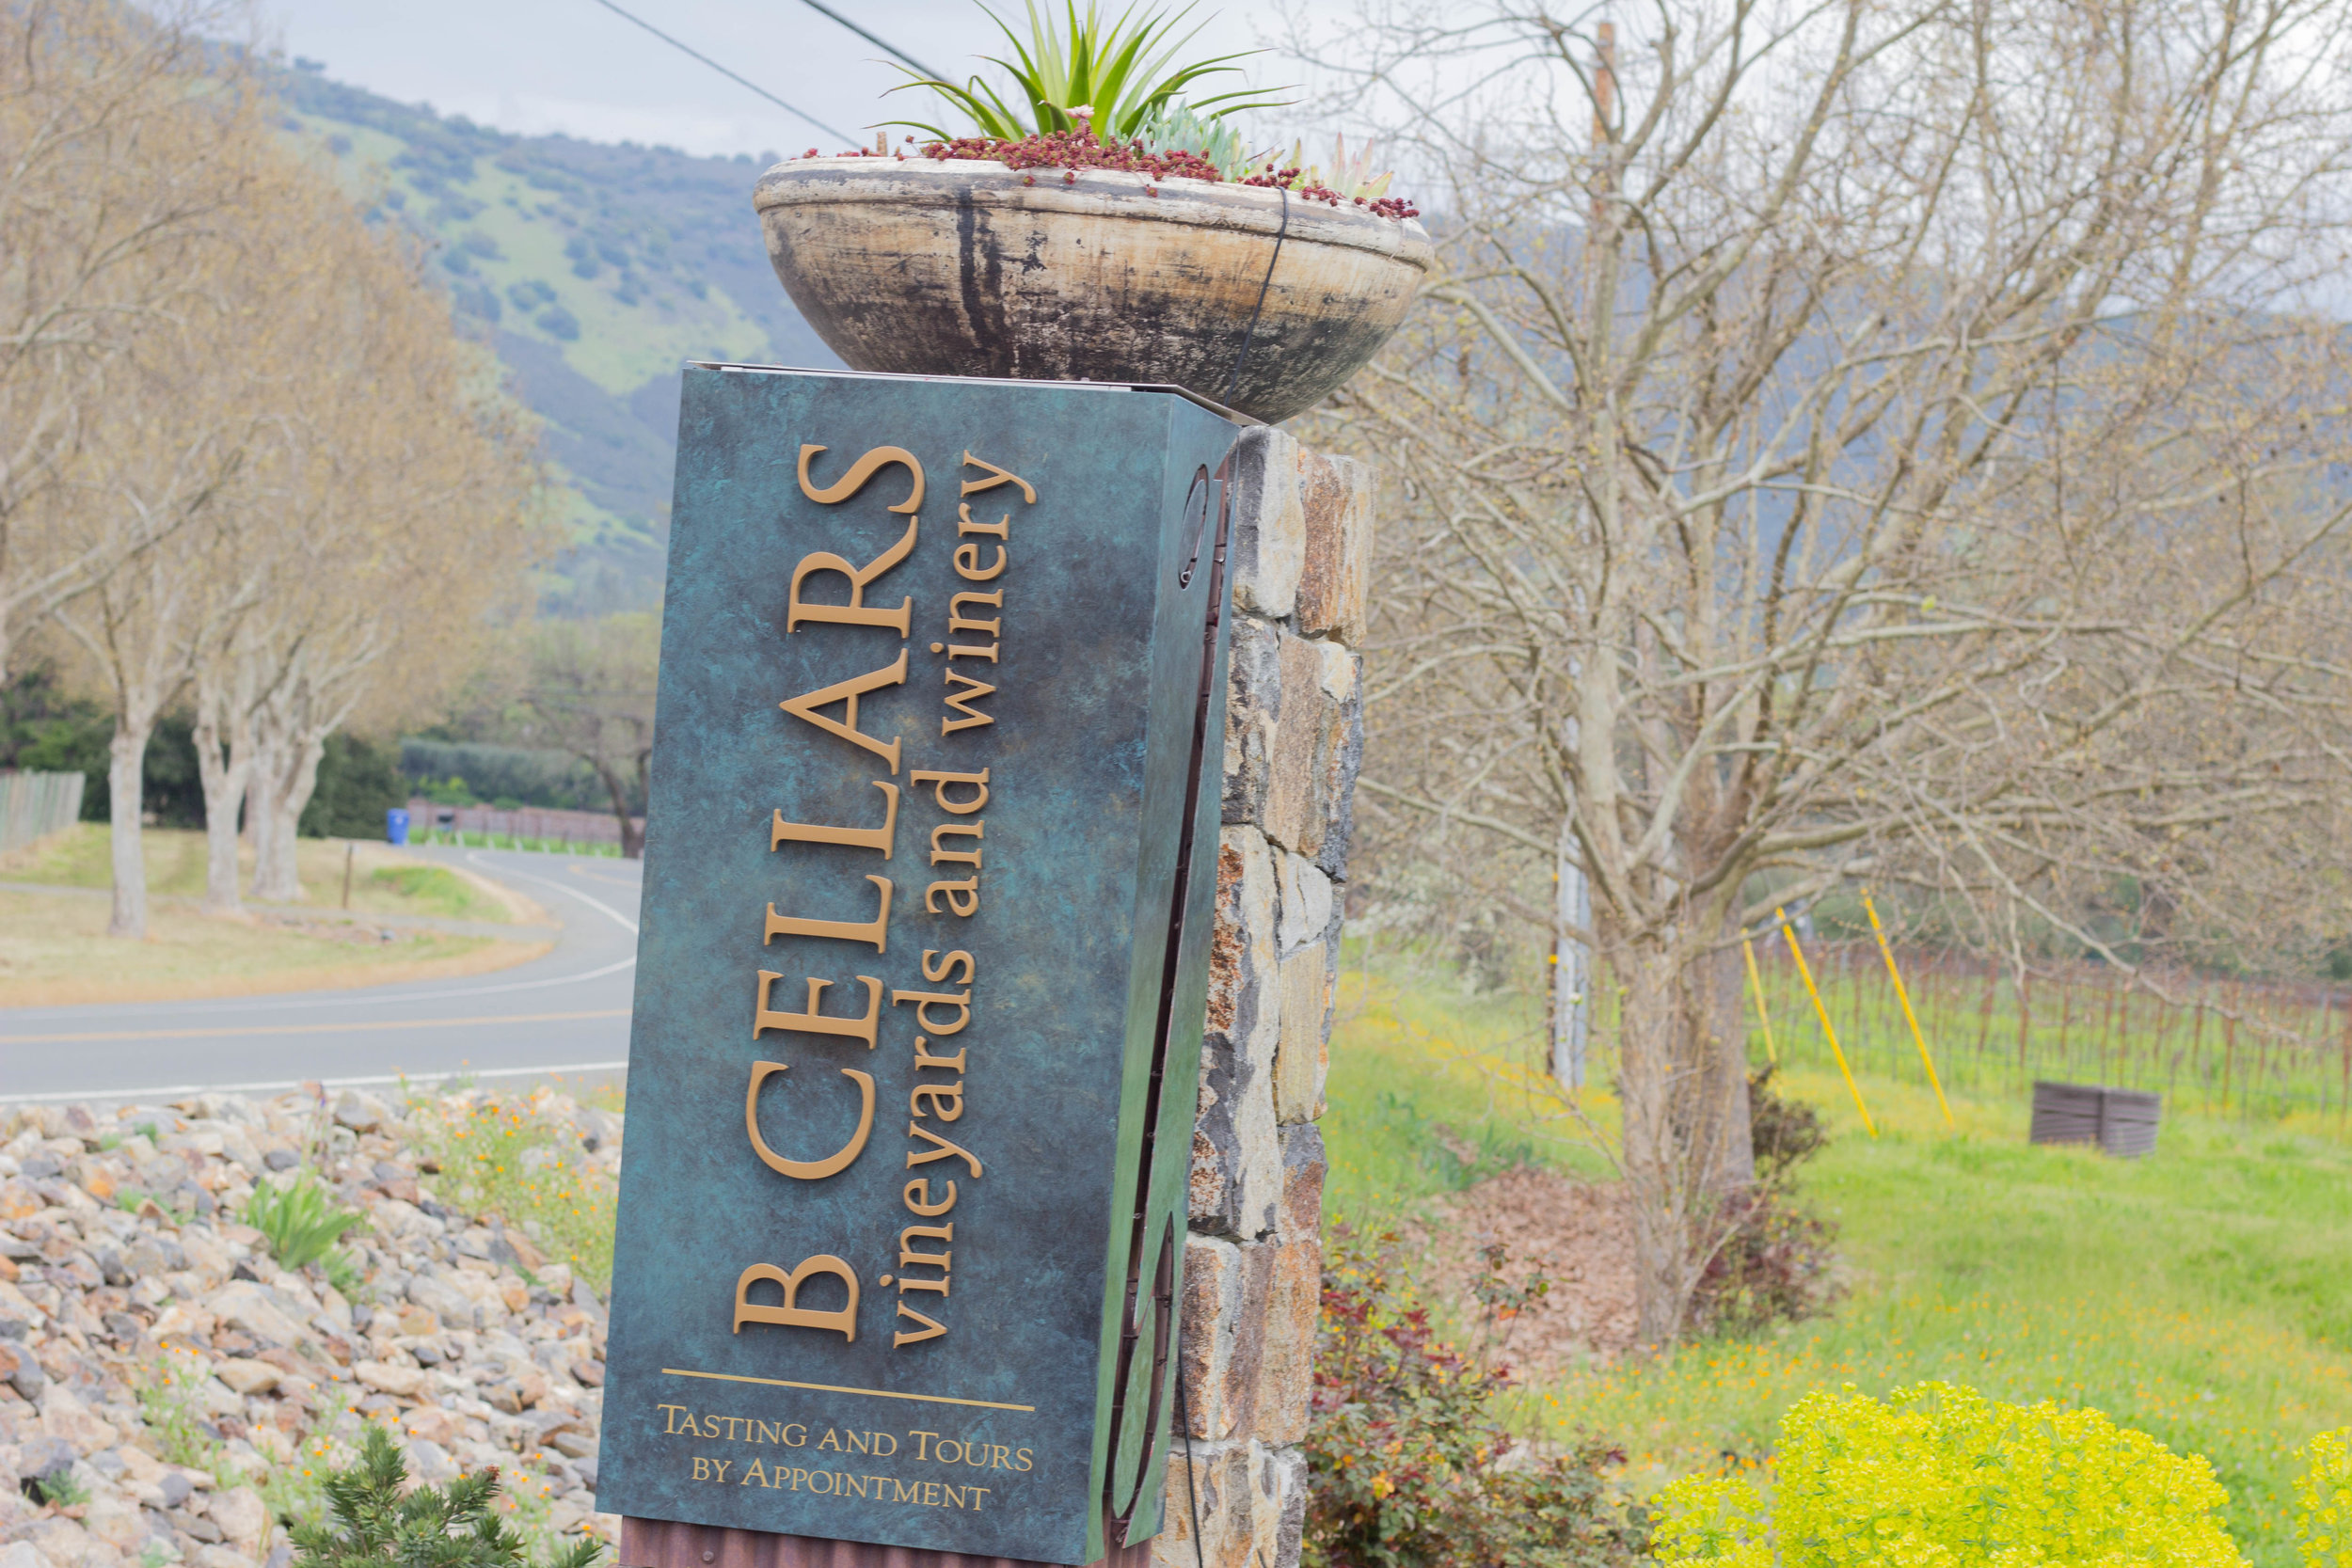 b cellars, tips for wine  tasting in napa valley, sonoma, napa, visit california, wine tasting tips, san francisco, oakland,